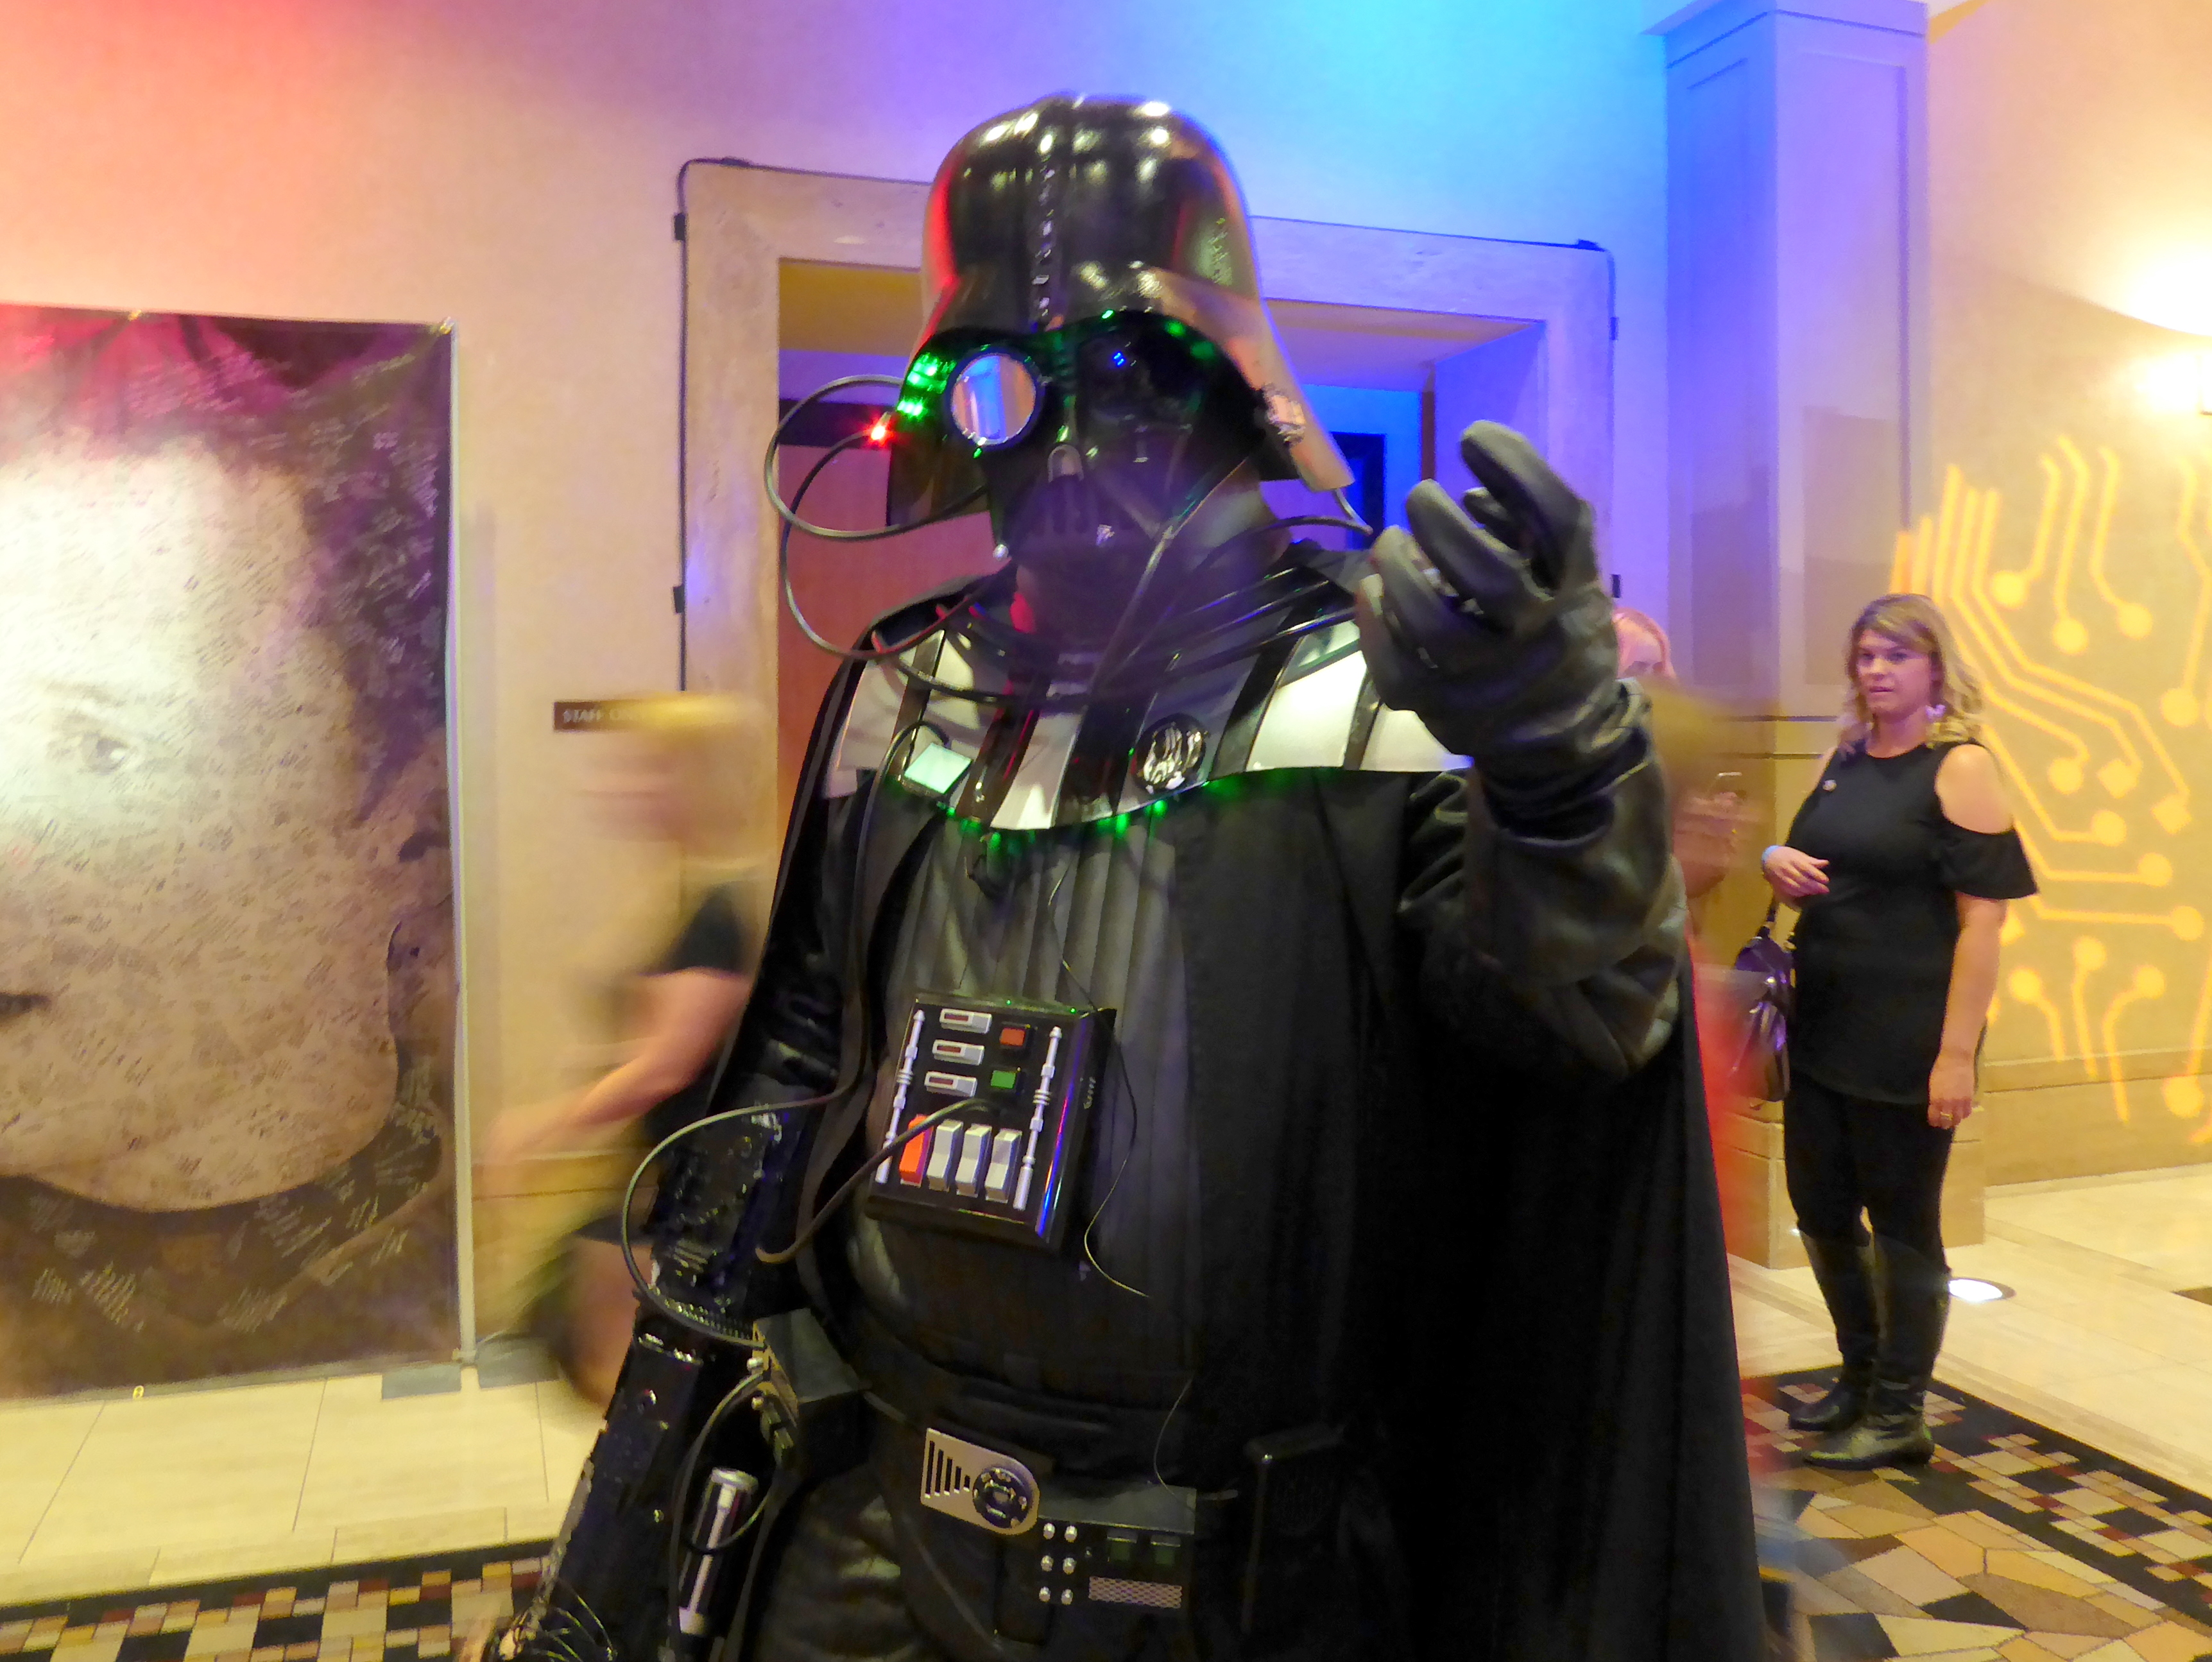 Darth Vader met the Borg...and lost